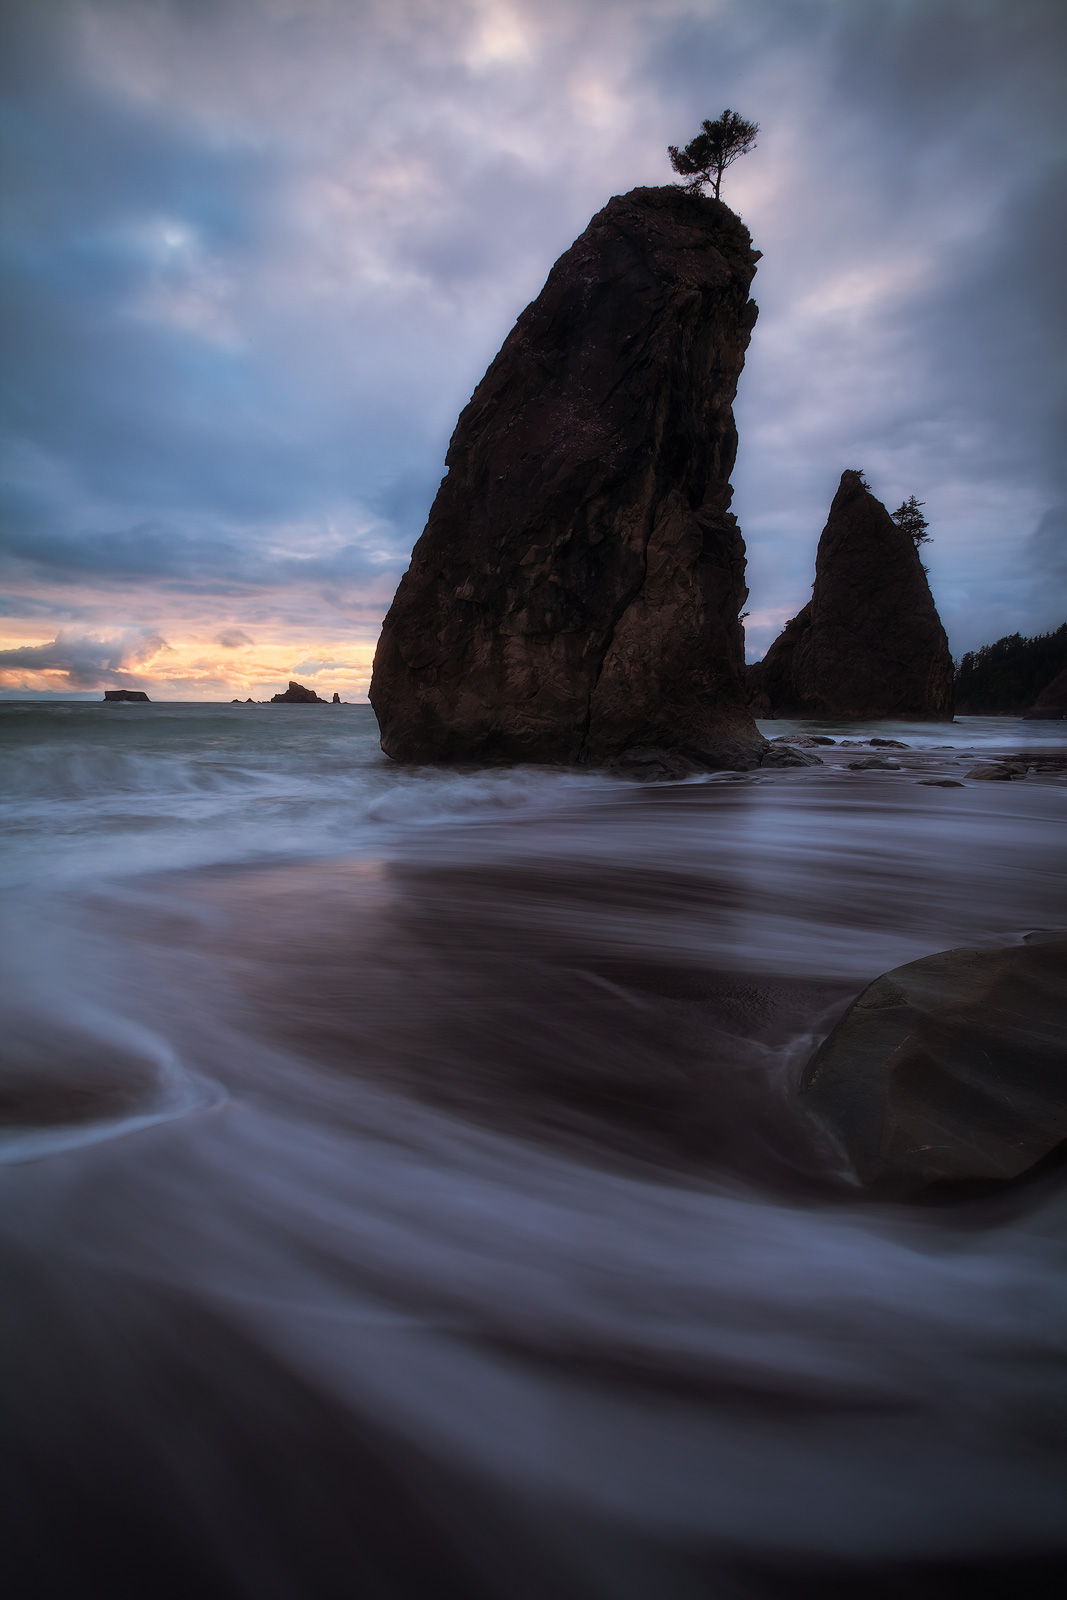 beach,cloudy,coast,coastal,crashing,evening,north america,northwest,ocean,pacific northwest,pacific ocean,rialto beach,sea stack,shore,united states,vertical,washington,water body,wave, photo